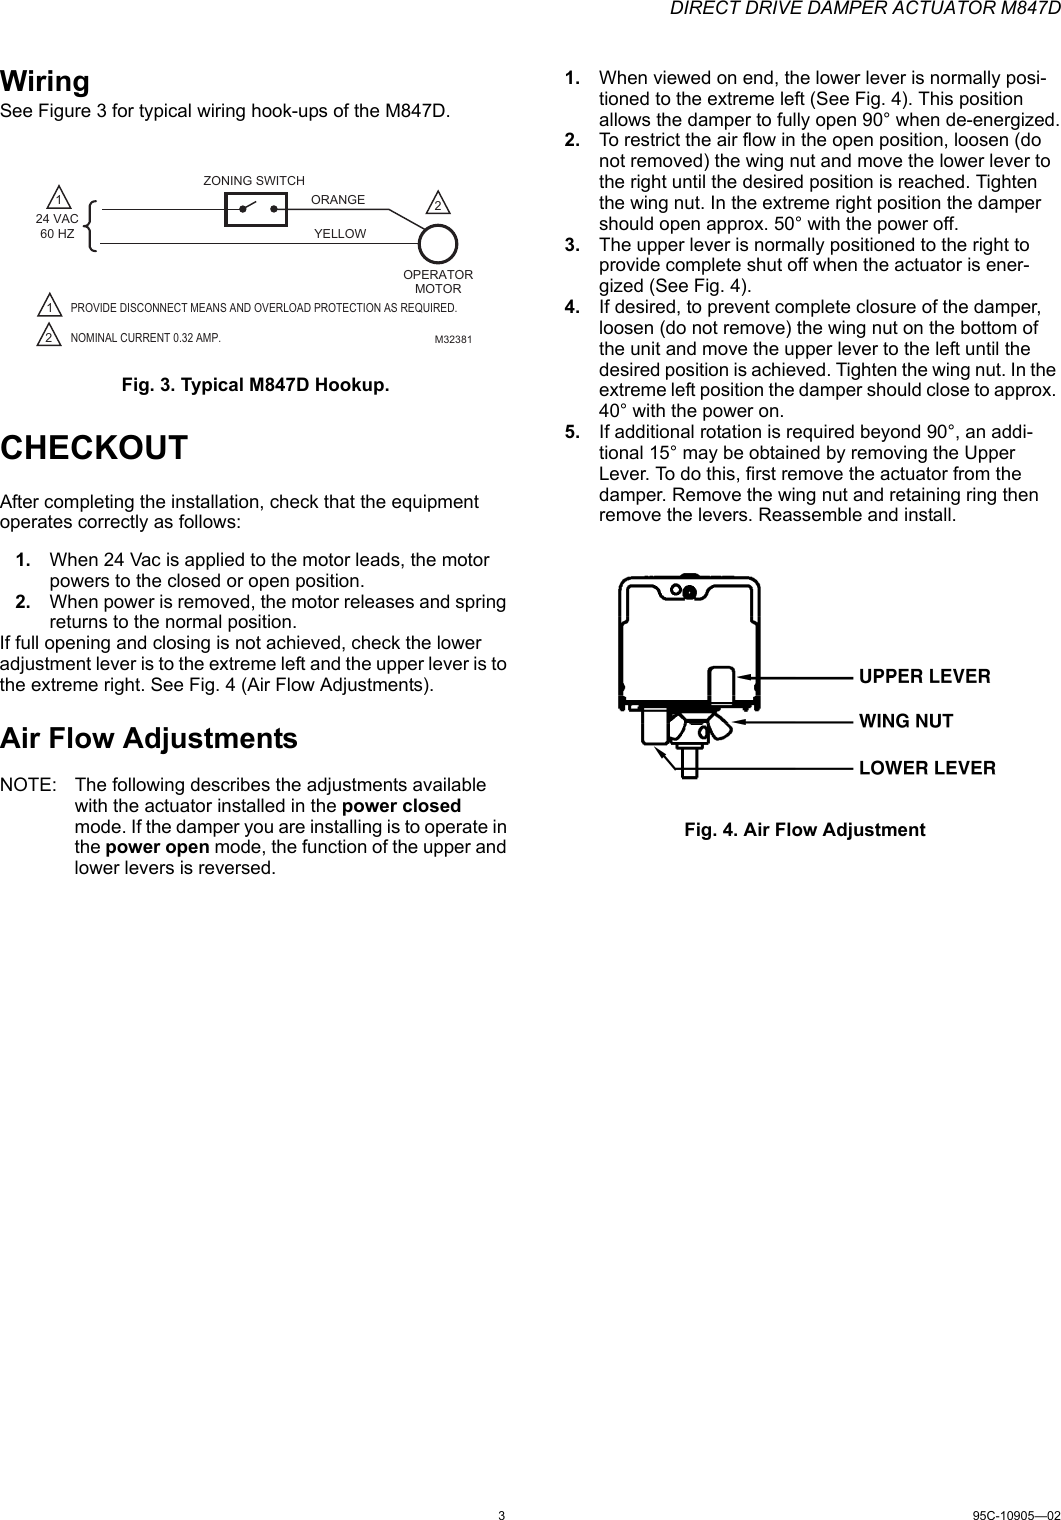 Honeywell Automobile Parts M847D Users Manual 95C 10905_A